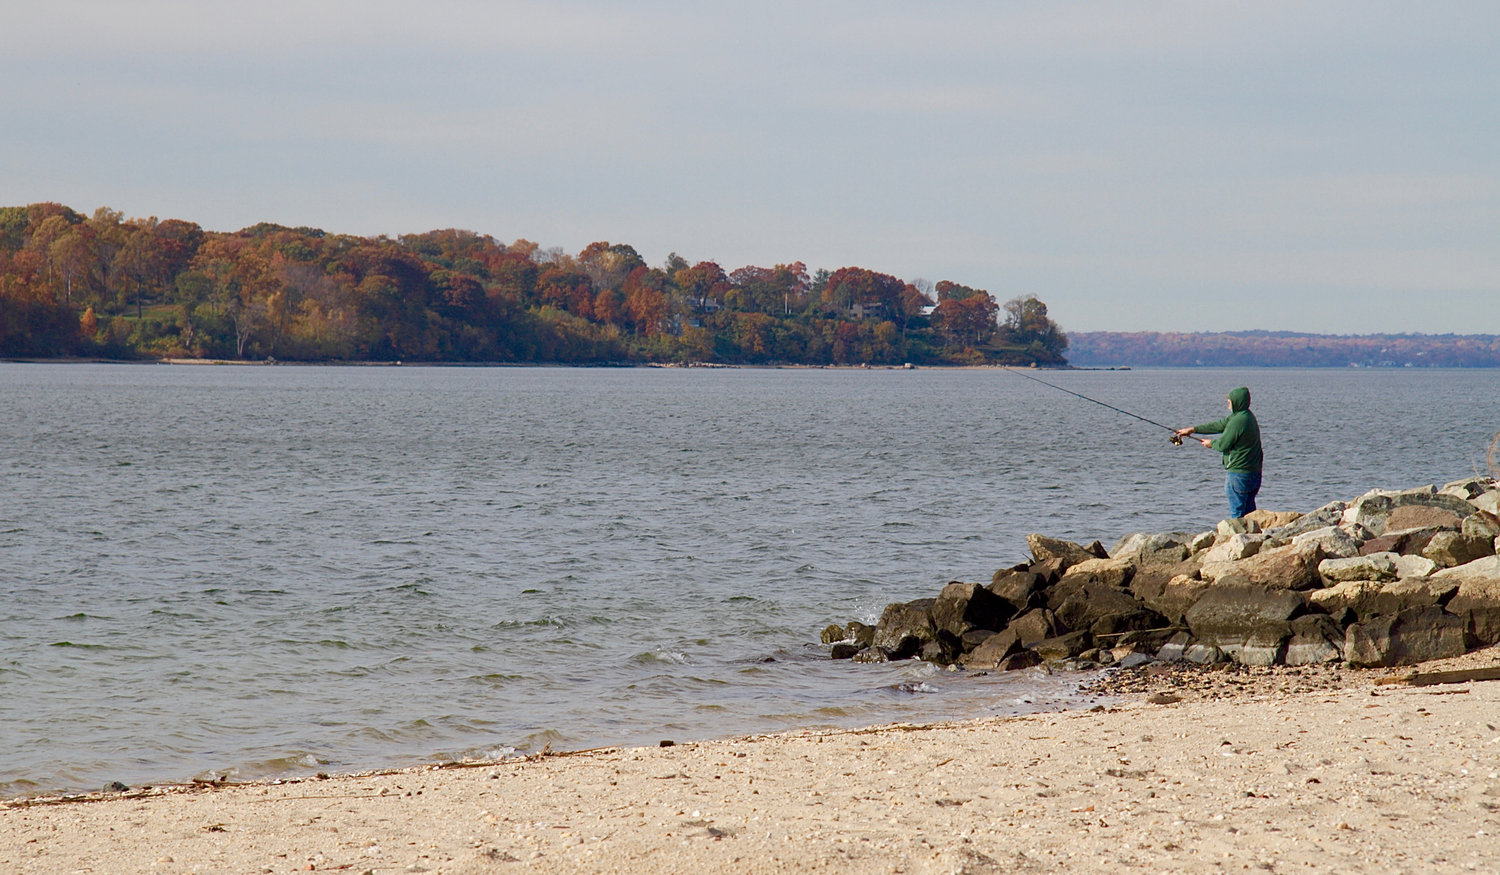 A lone fisherman throws his line into Hempstead Harbor from the shores of Sea Cliff Beach, hoping for one last catch.